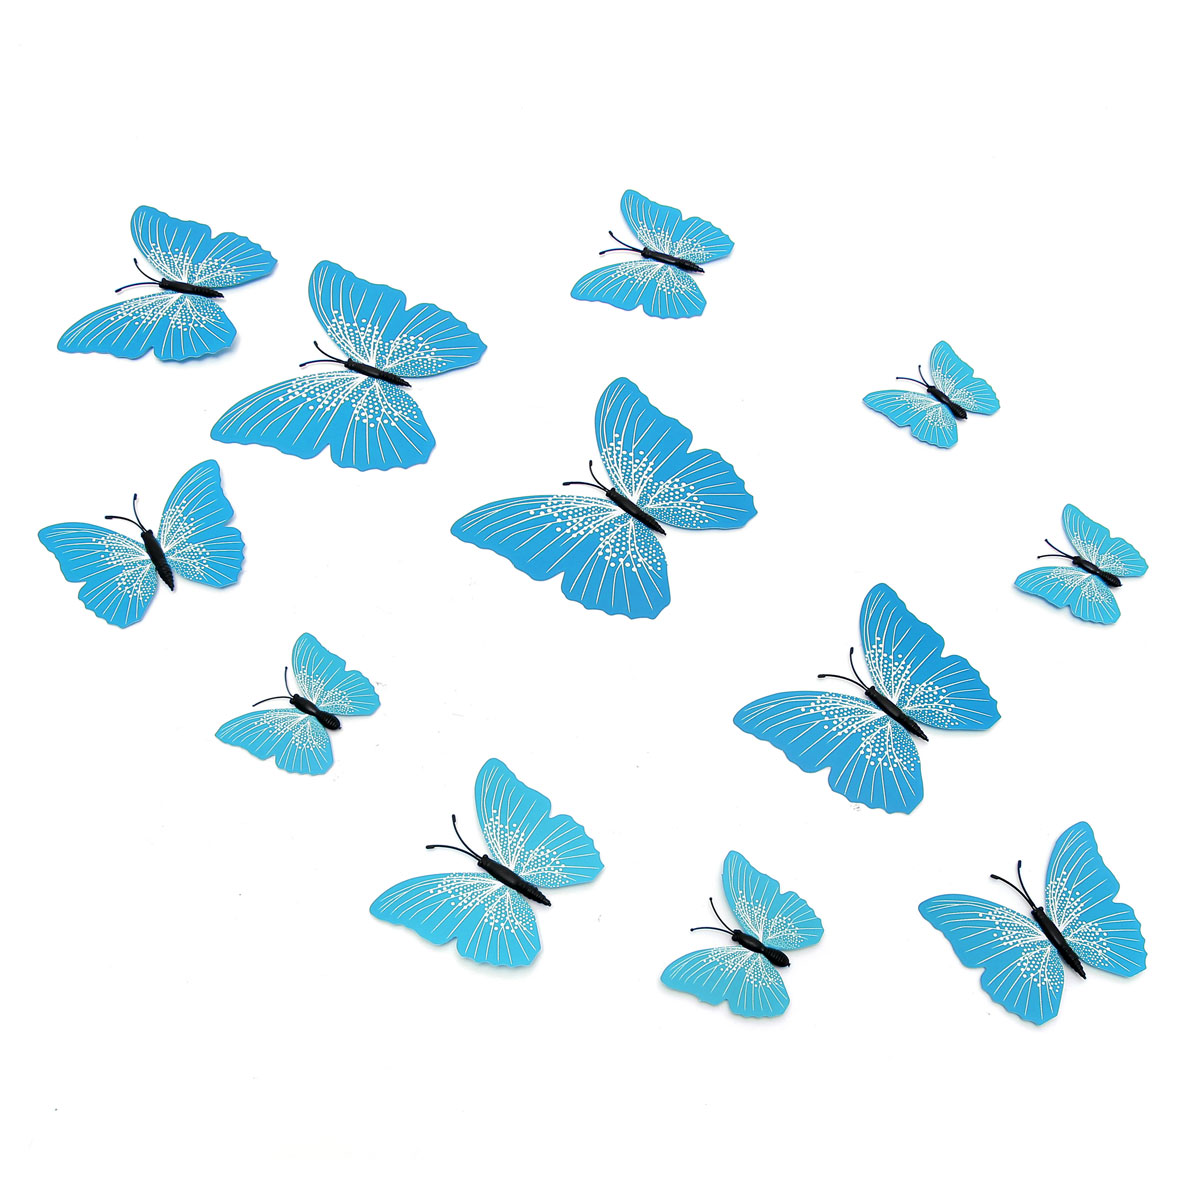 12PCS 3D Butterfly Art Design Decals Wall Stickers Home Decor Room Wedding Party Decorations